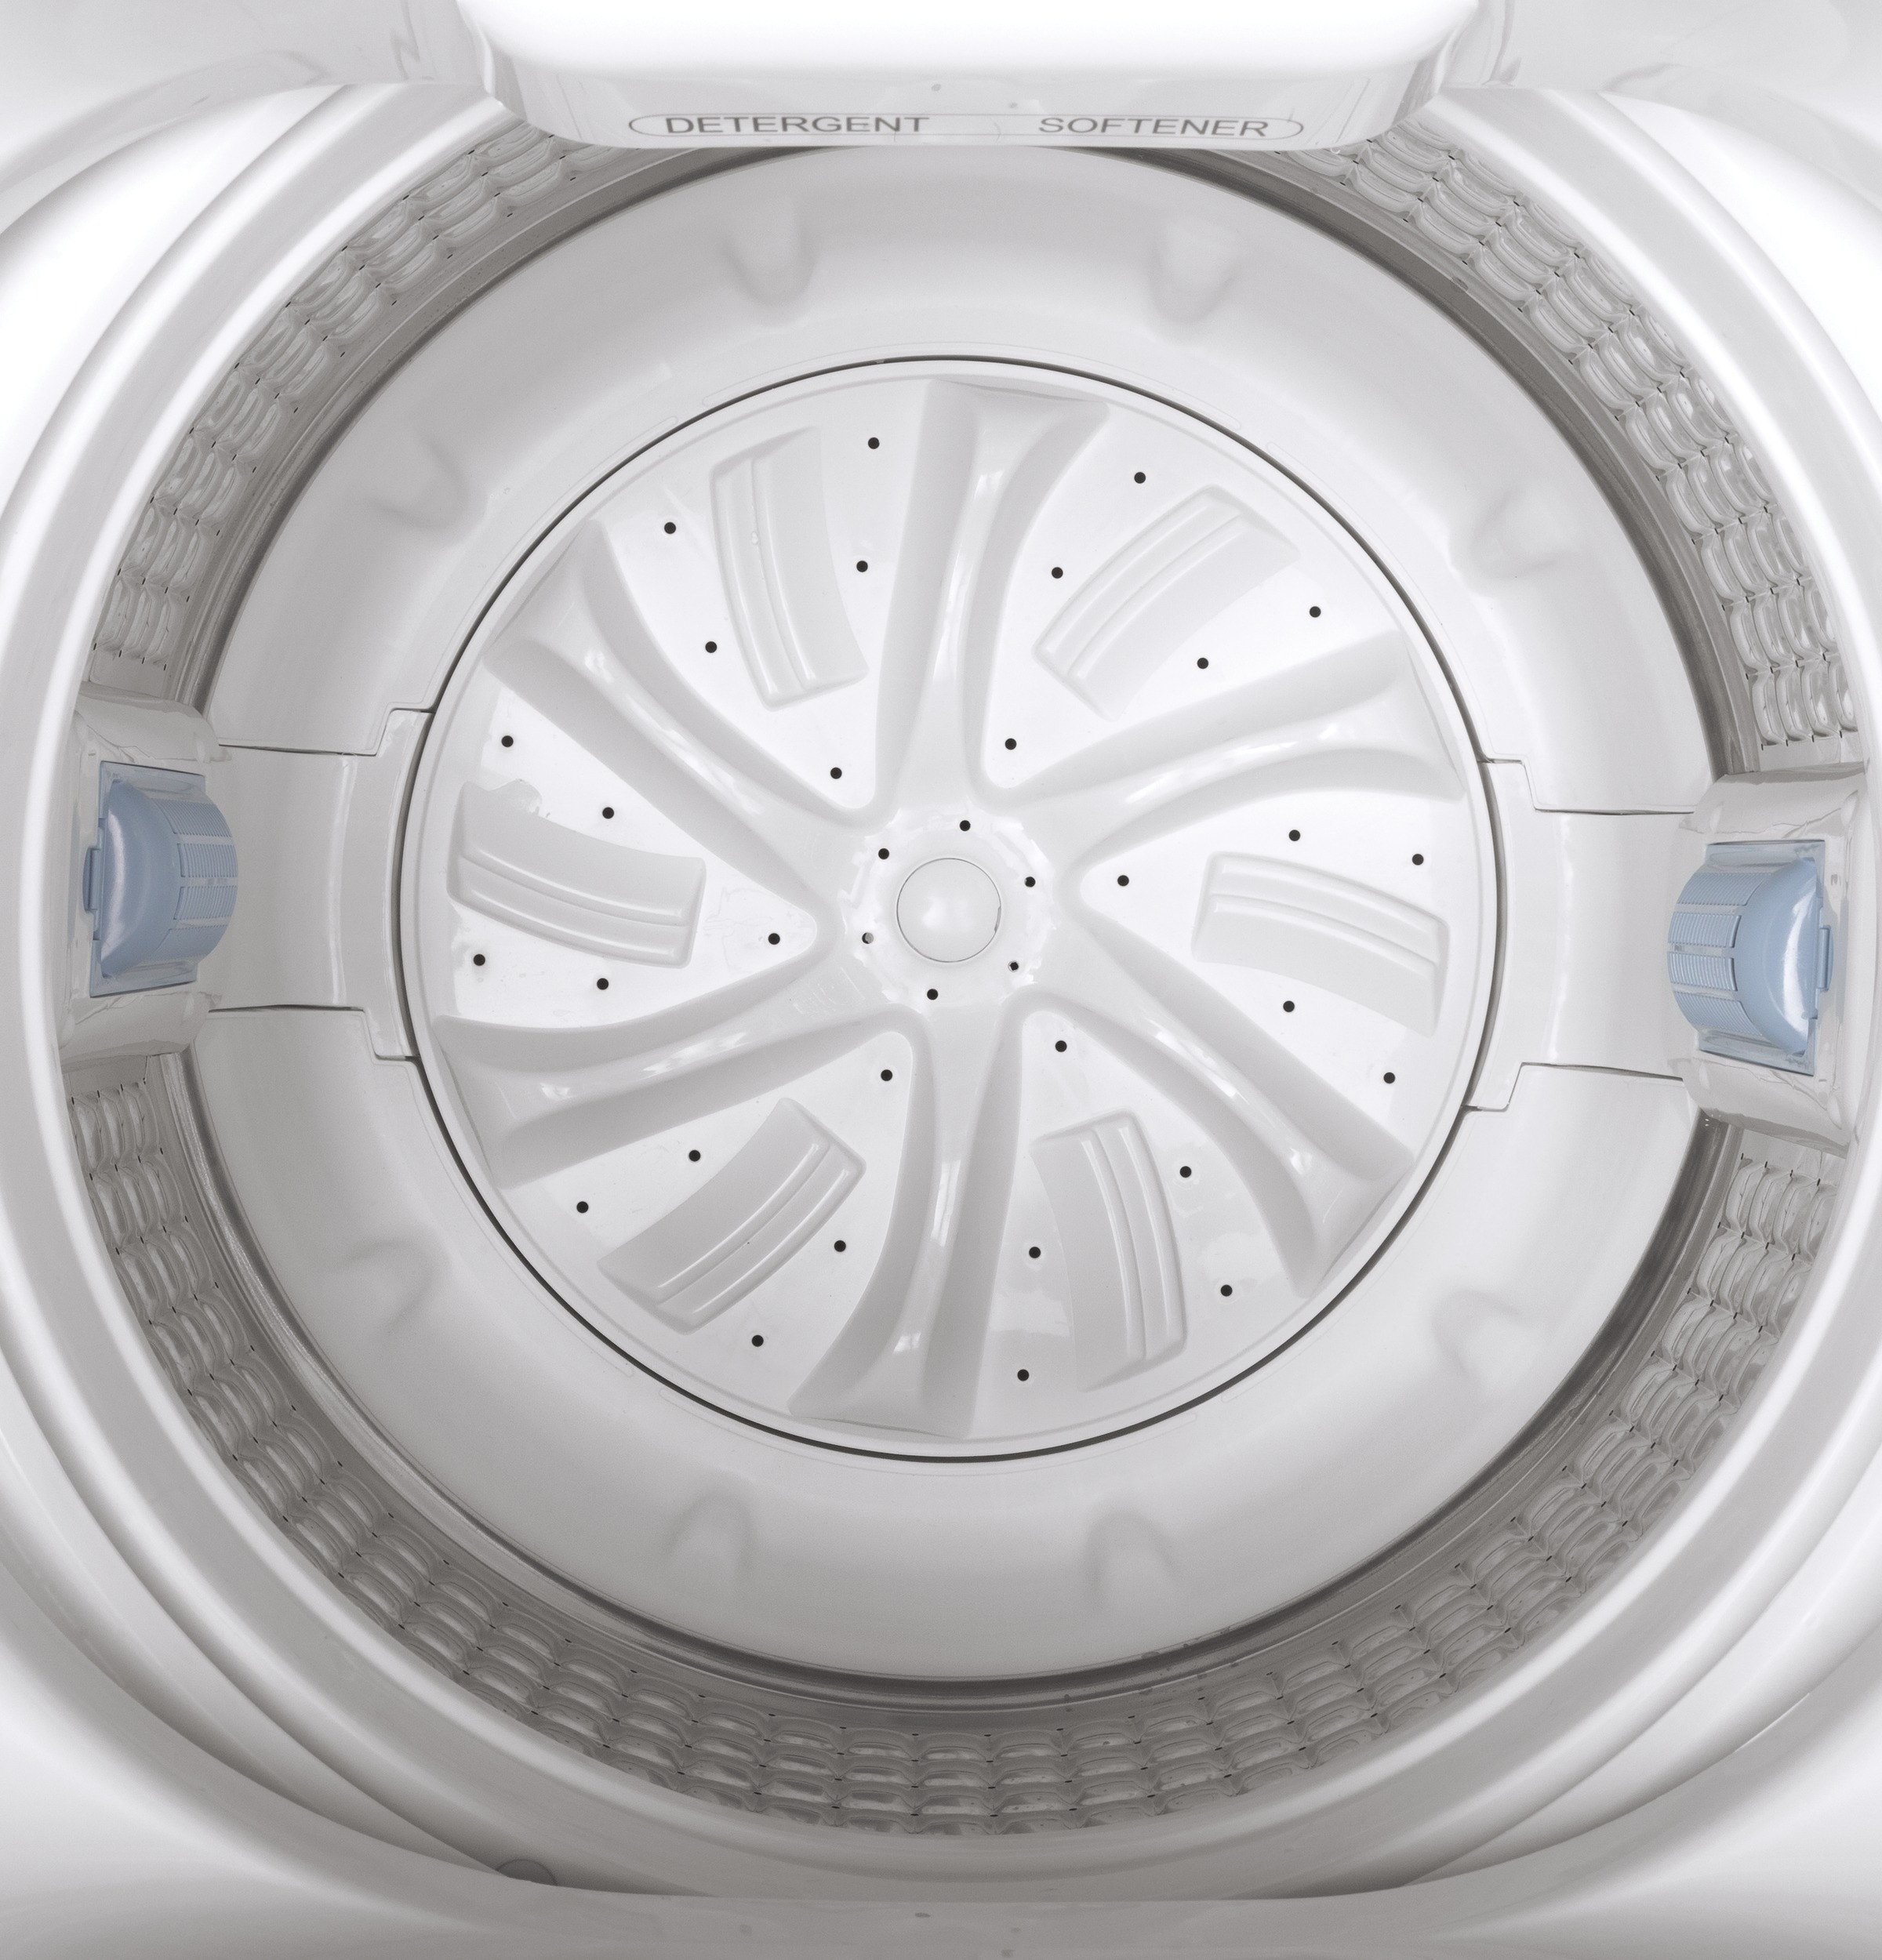 Model: GNW128SSMWW | GE GE® Space-Saving 2.8 cu. ft. Capacity Stationary Washer with Stainless Steel Basket